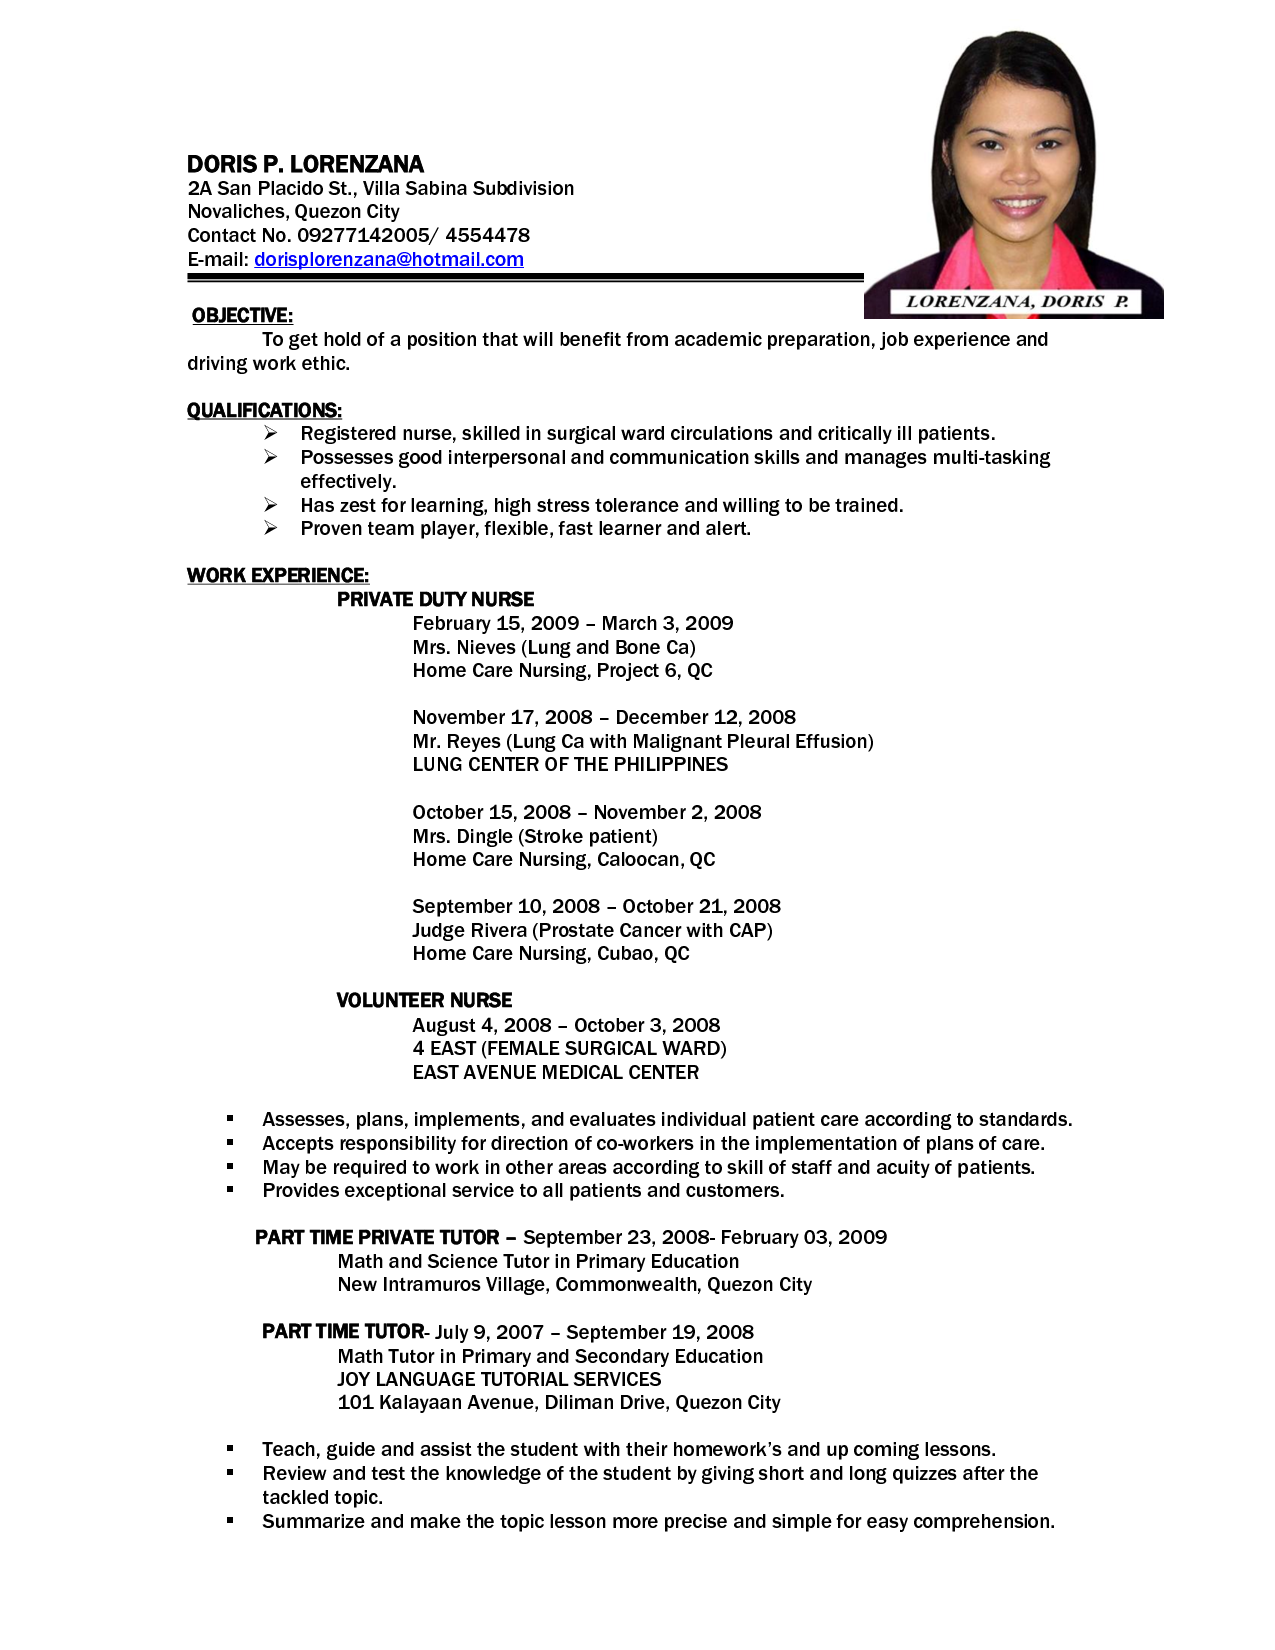 formal resume example